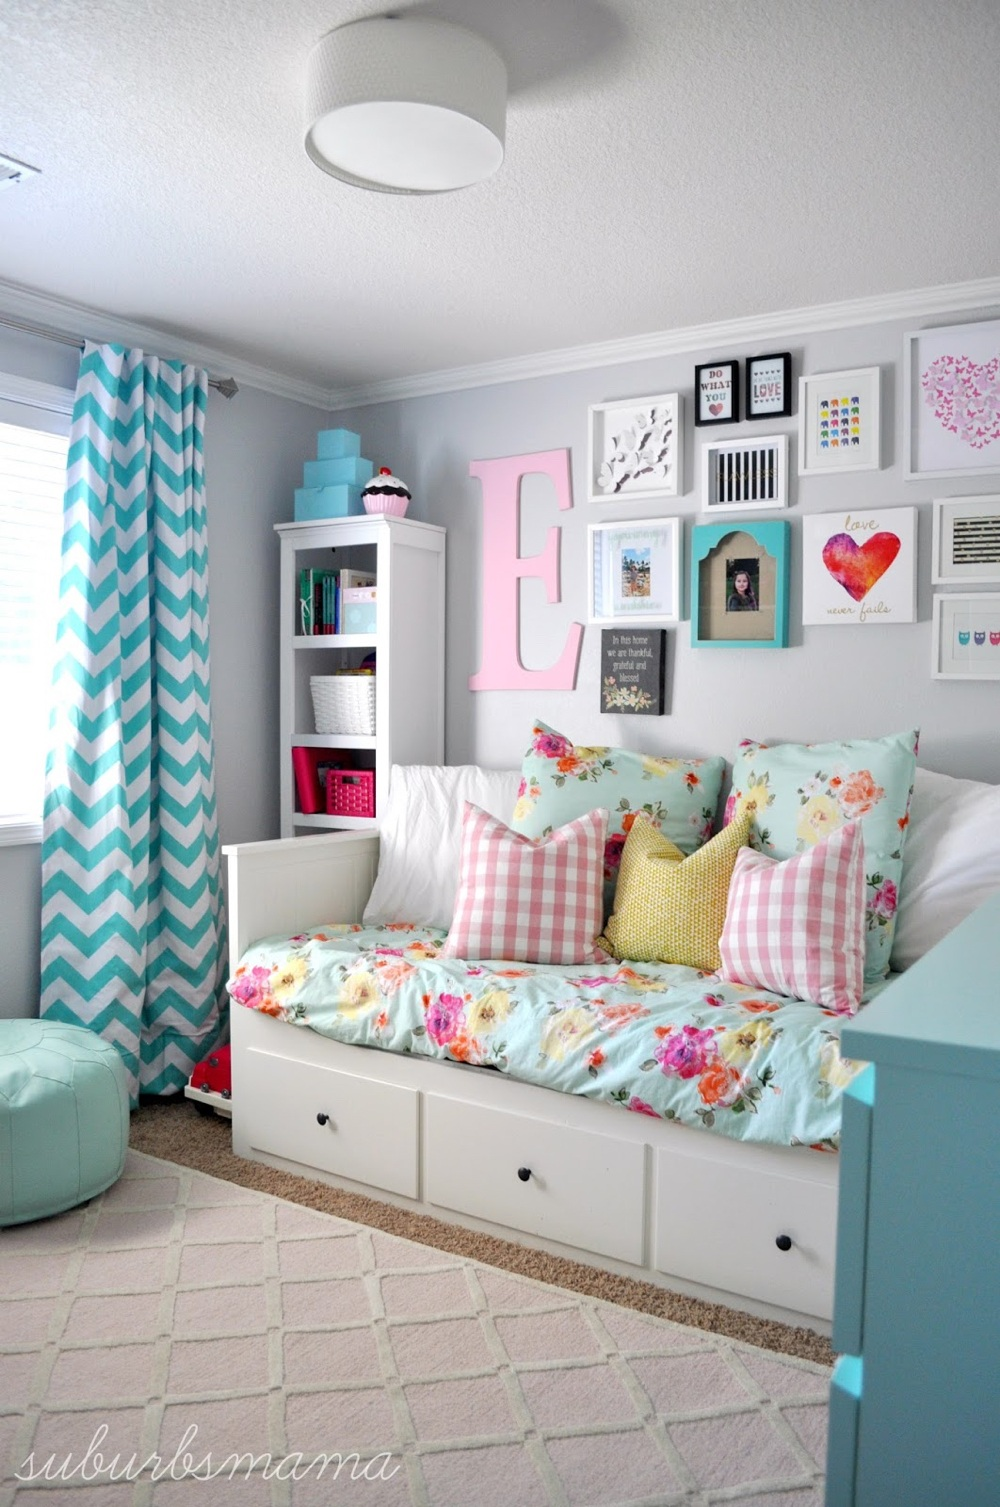 23 Stylish Teen Girl's Bedroom Ideas | Homelovr on Teenage Small Bedroom Ideas  id=81723